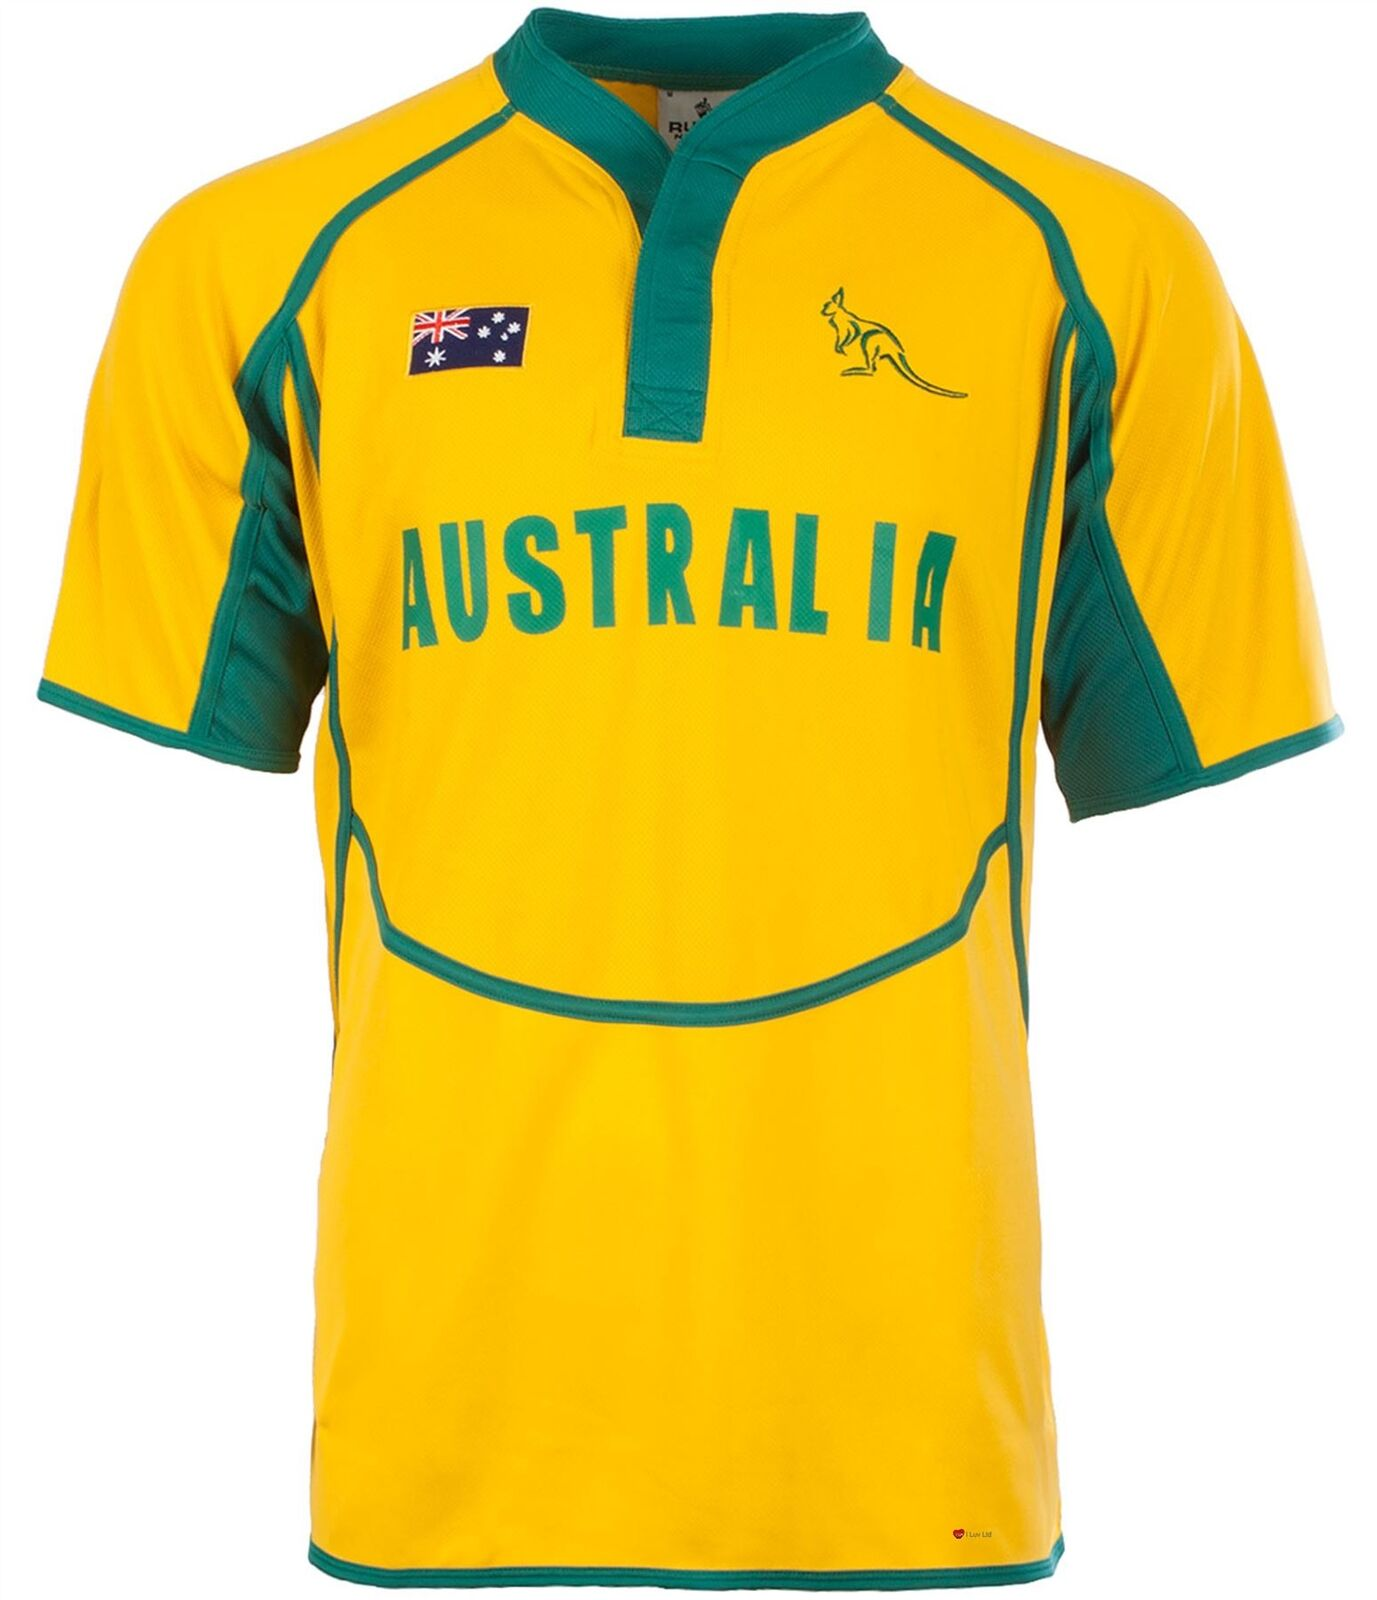 Gents Cooldry Style Rugby Shirt In Australia Colours Size Large